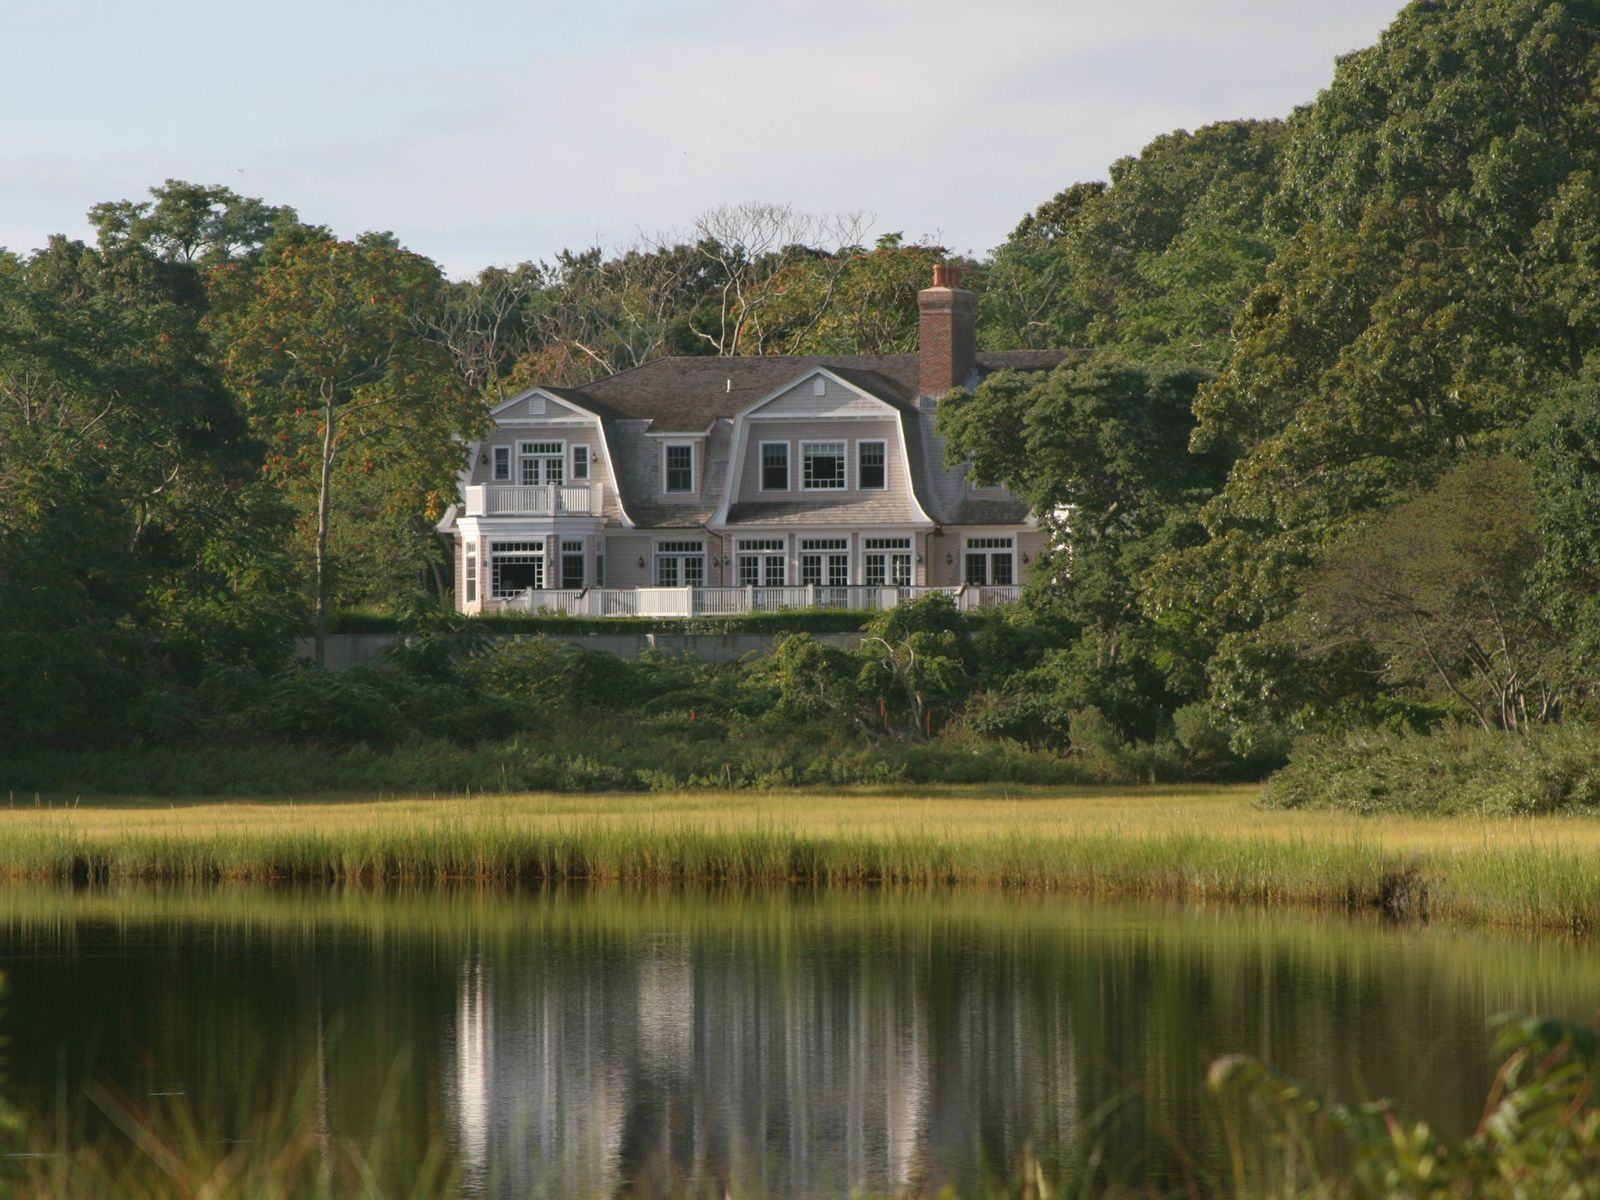 North Haven Point, Sag Harbor NY Single Family Home - Hamptons Real Estate